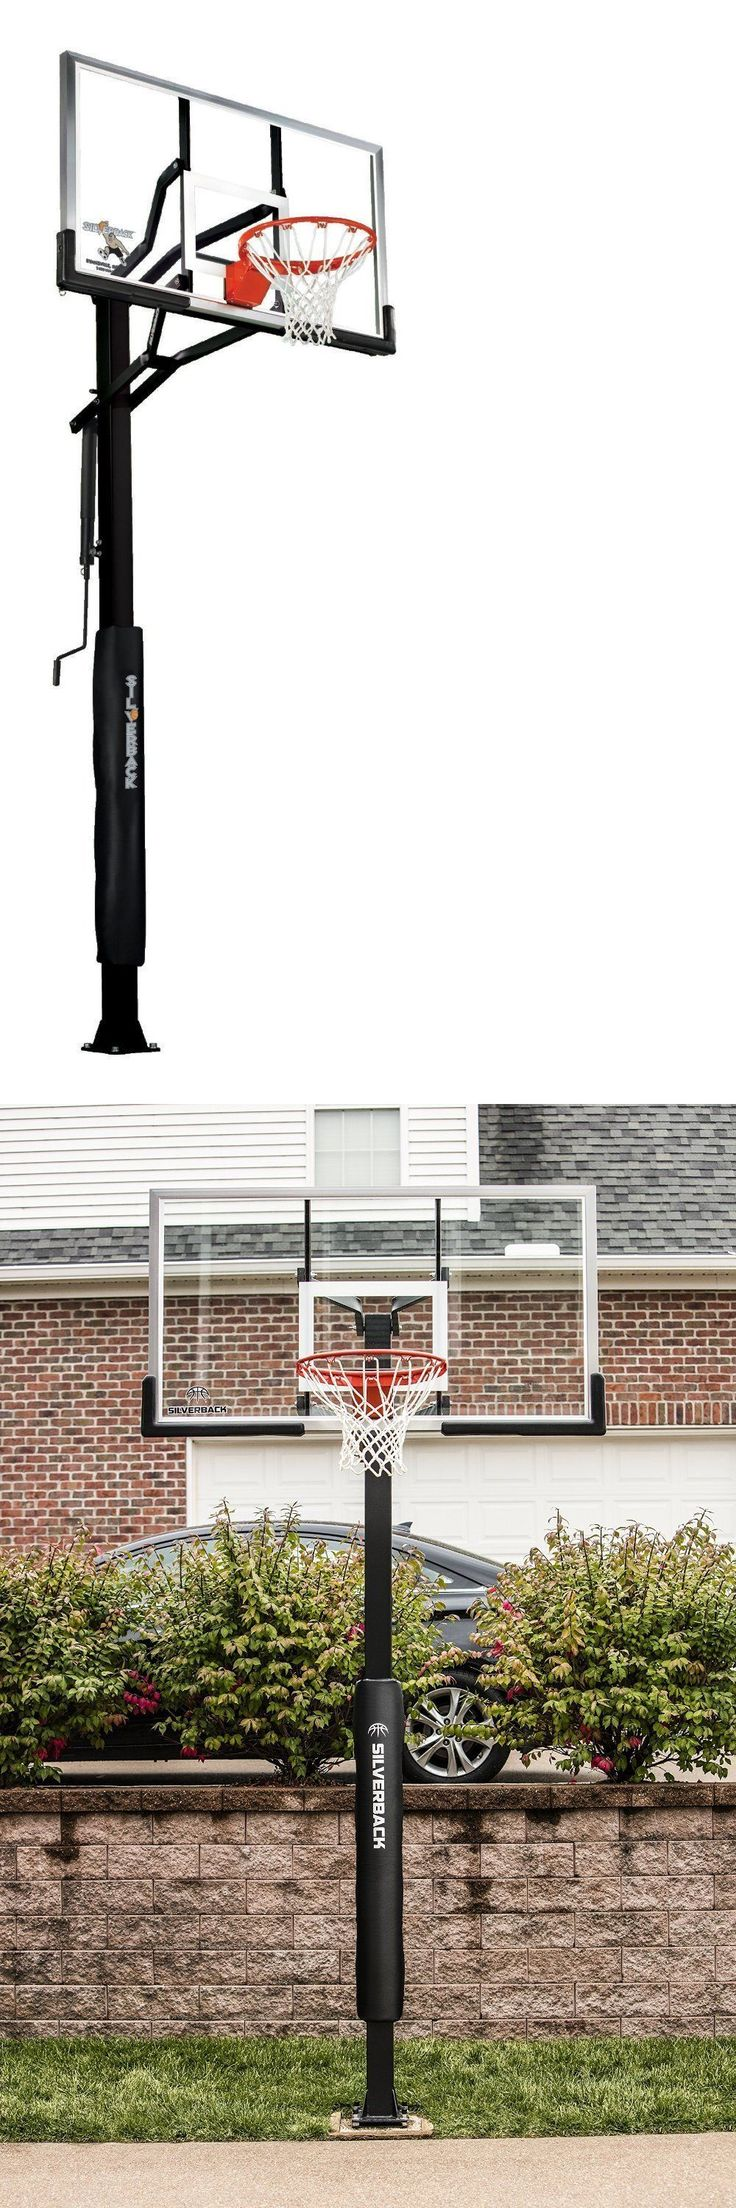 Backboard Systems 21196: Silverback B5401 In-Ground Basketball System - 54 Glass Backboard - Pickup Only BUY IT NOW ONLY: $525.0